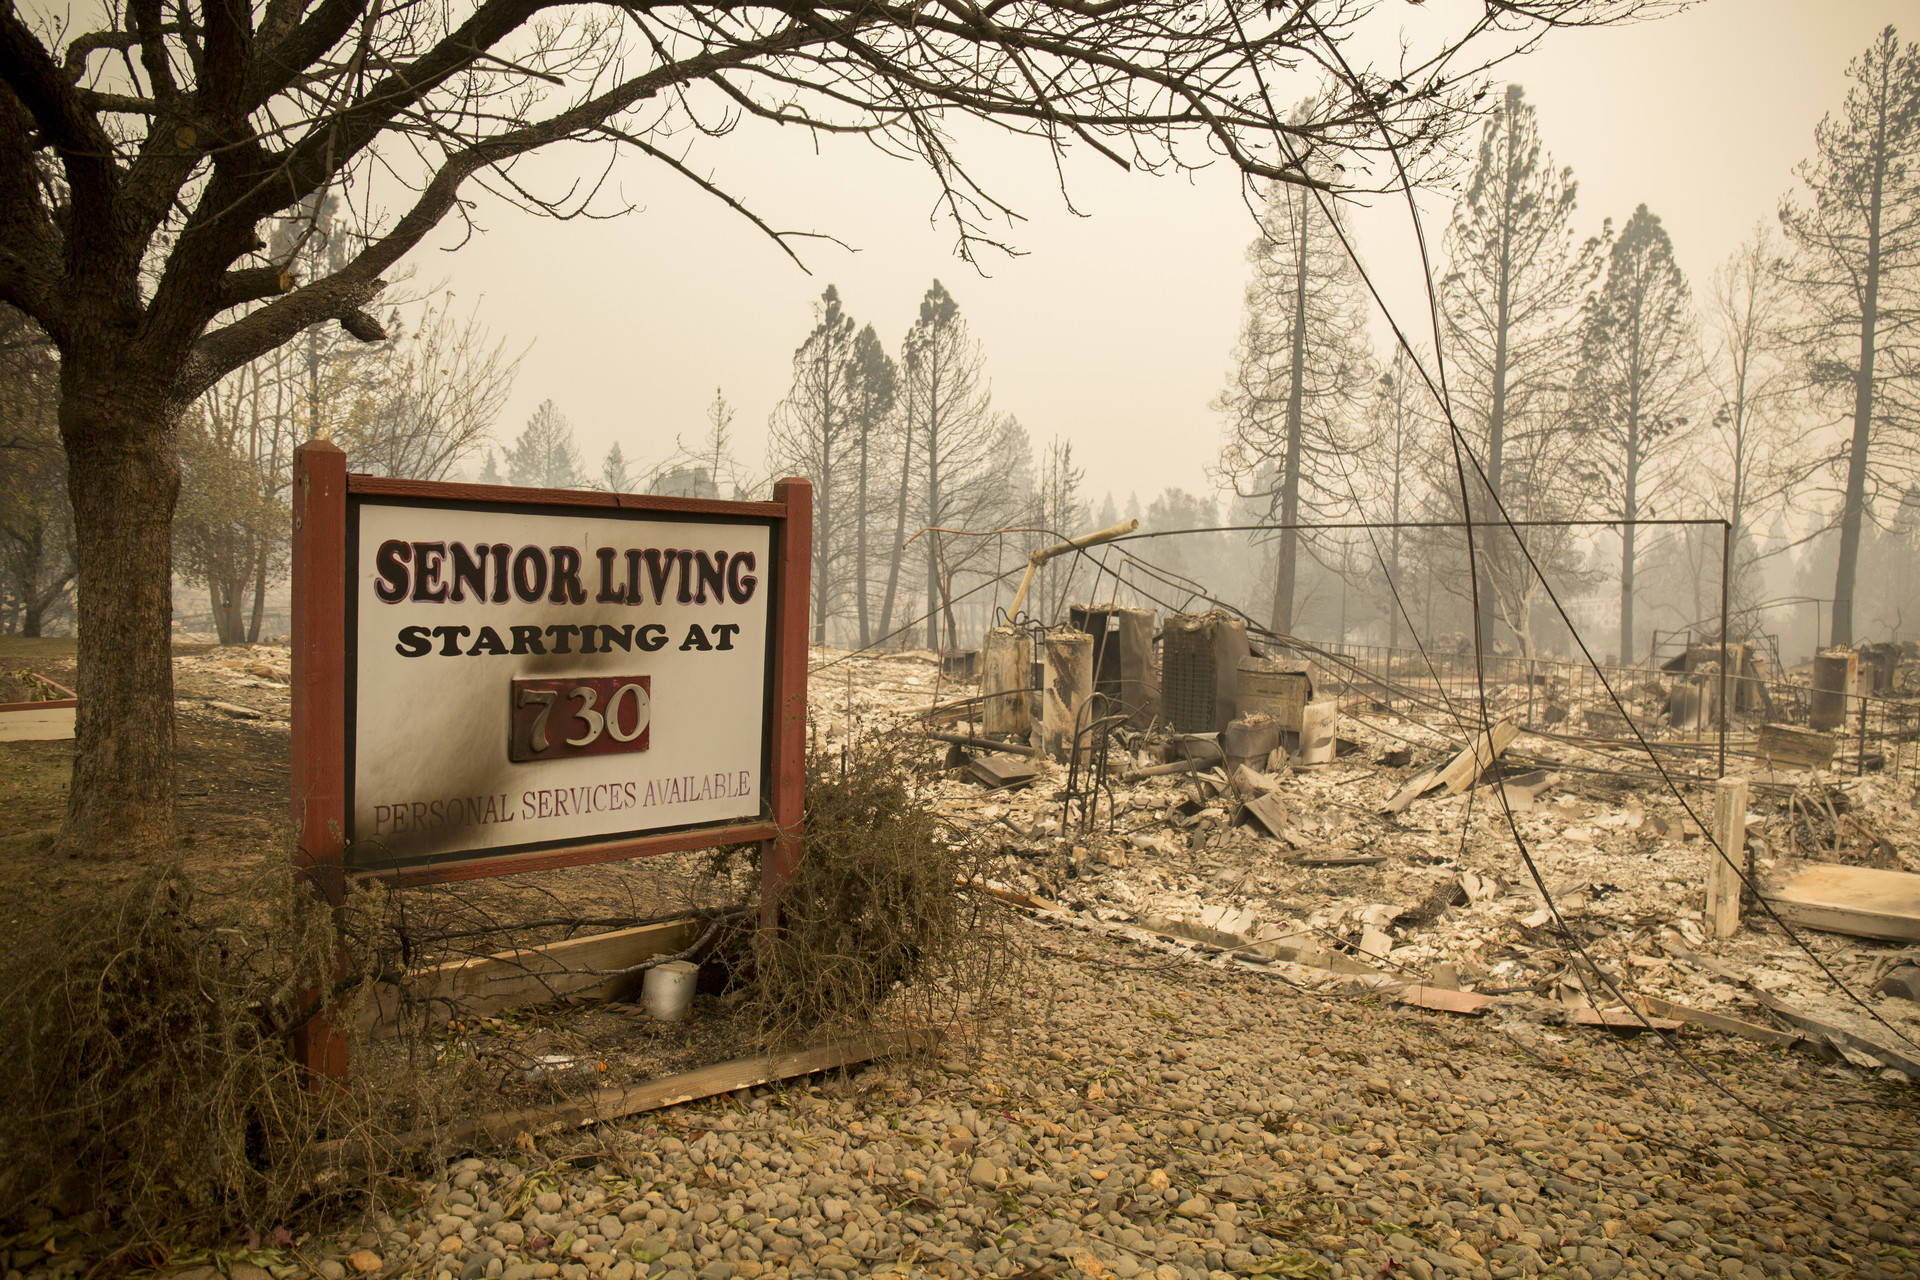 Paradise Gardens senior living facility was destroyed by the deadly Camp Fire in Butte County.   Anne Wernikoff/KQED